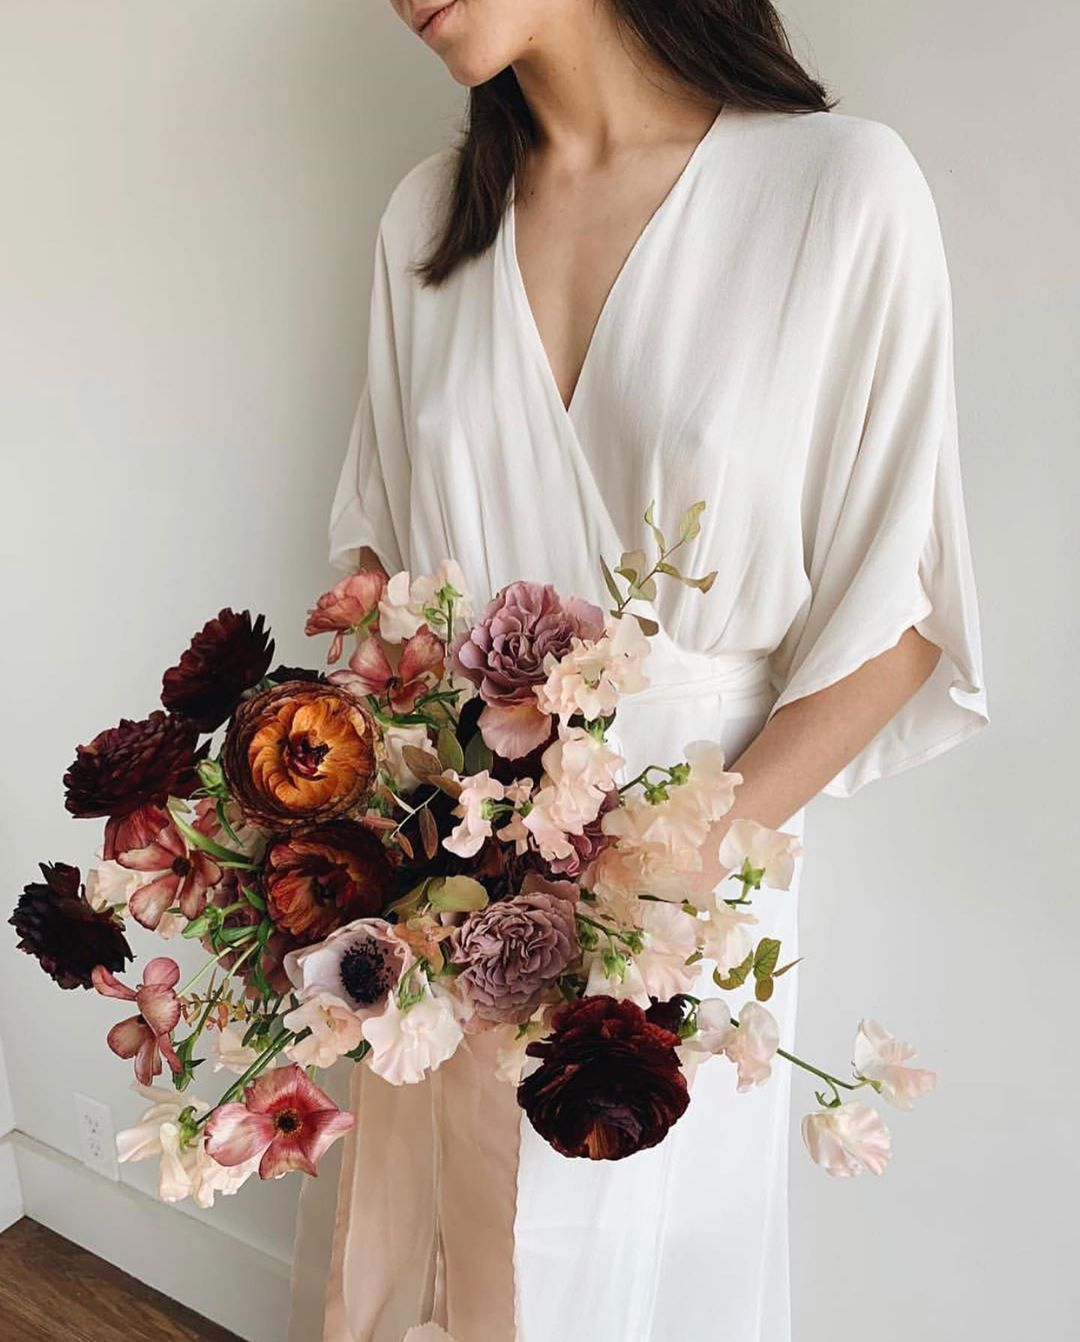 Nicole Land On Instagram Last Call For 25 Off Online Floraldesign Courses Including The Bouqu Bridal Bouquet Wedding Bridal Bouquets Flower Bouquet Wedding